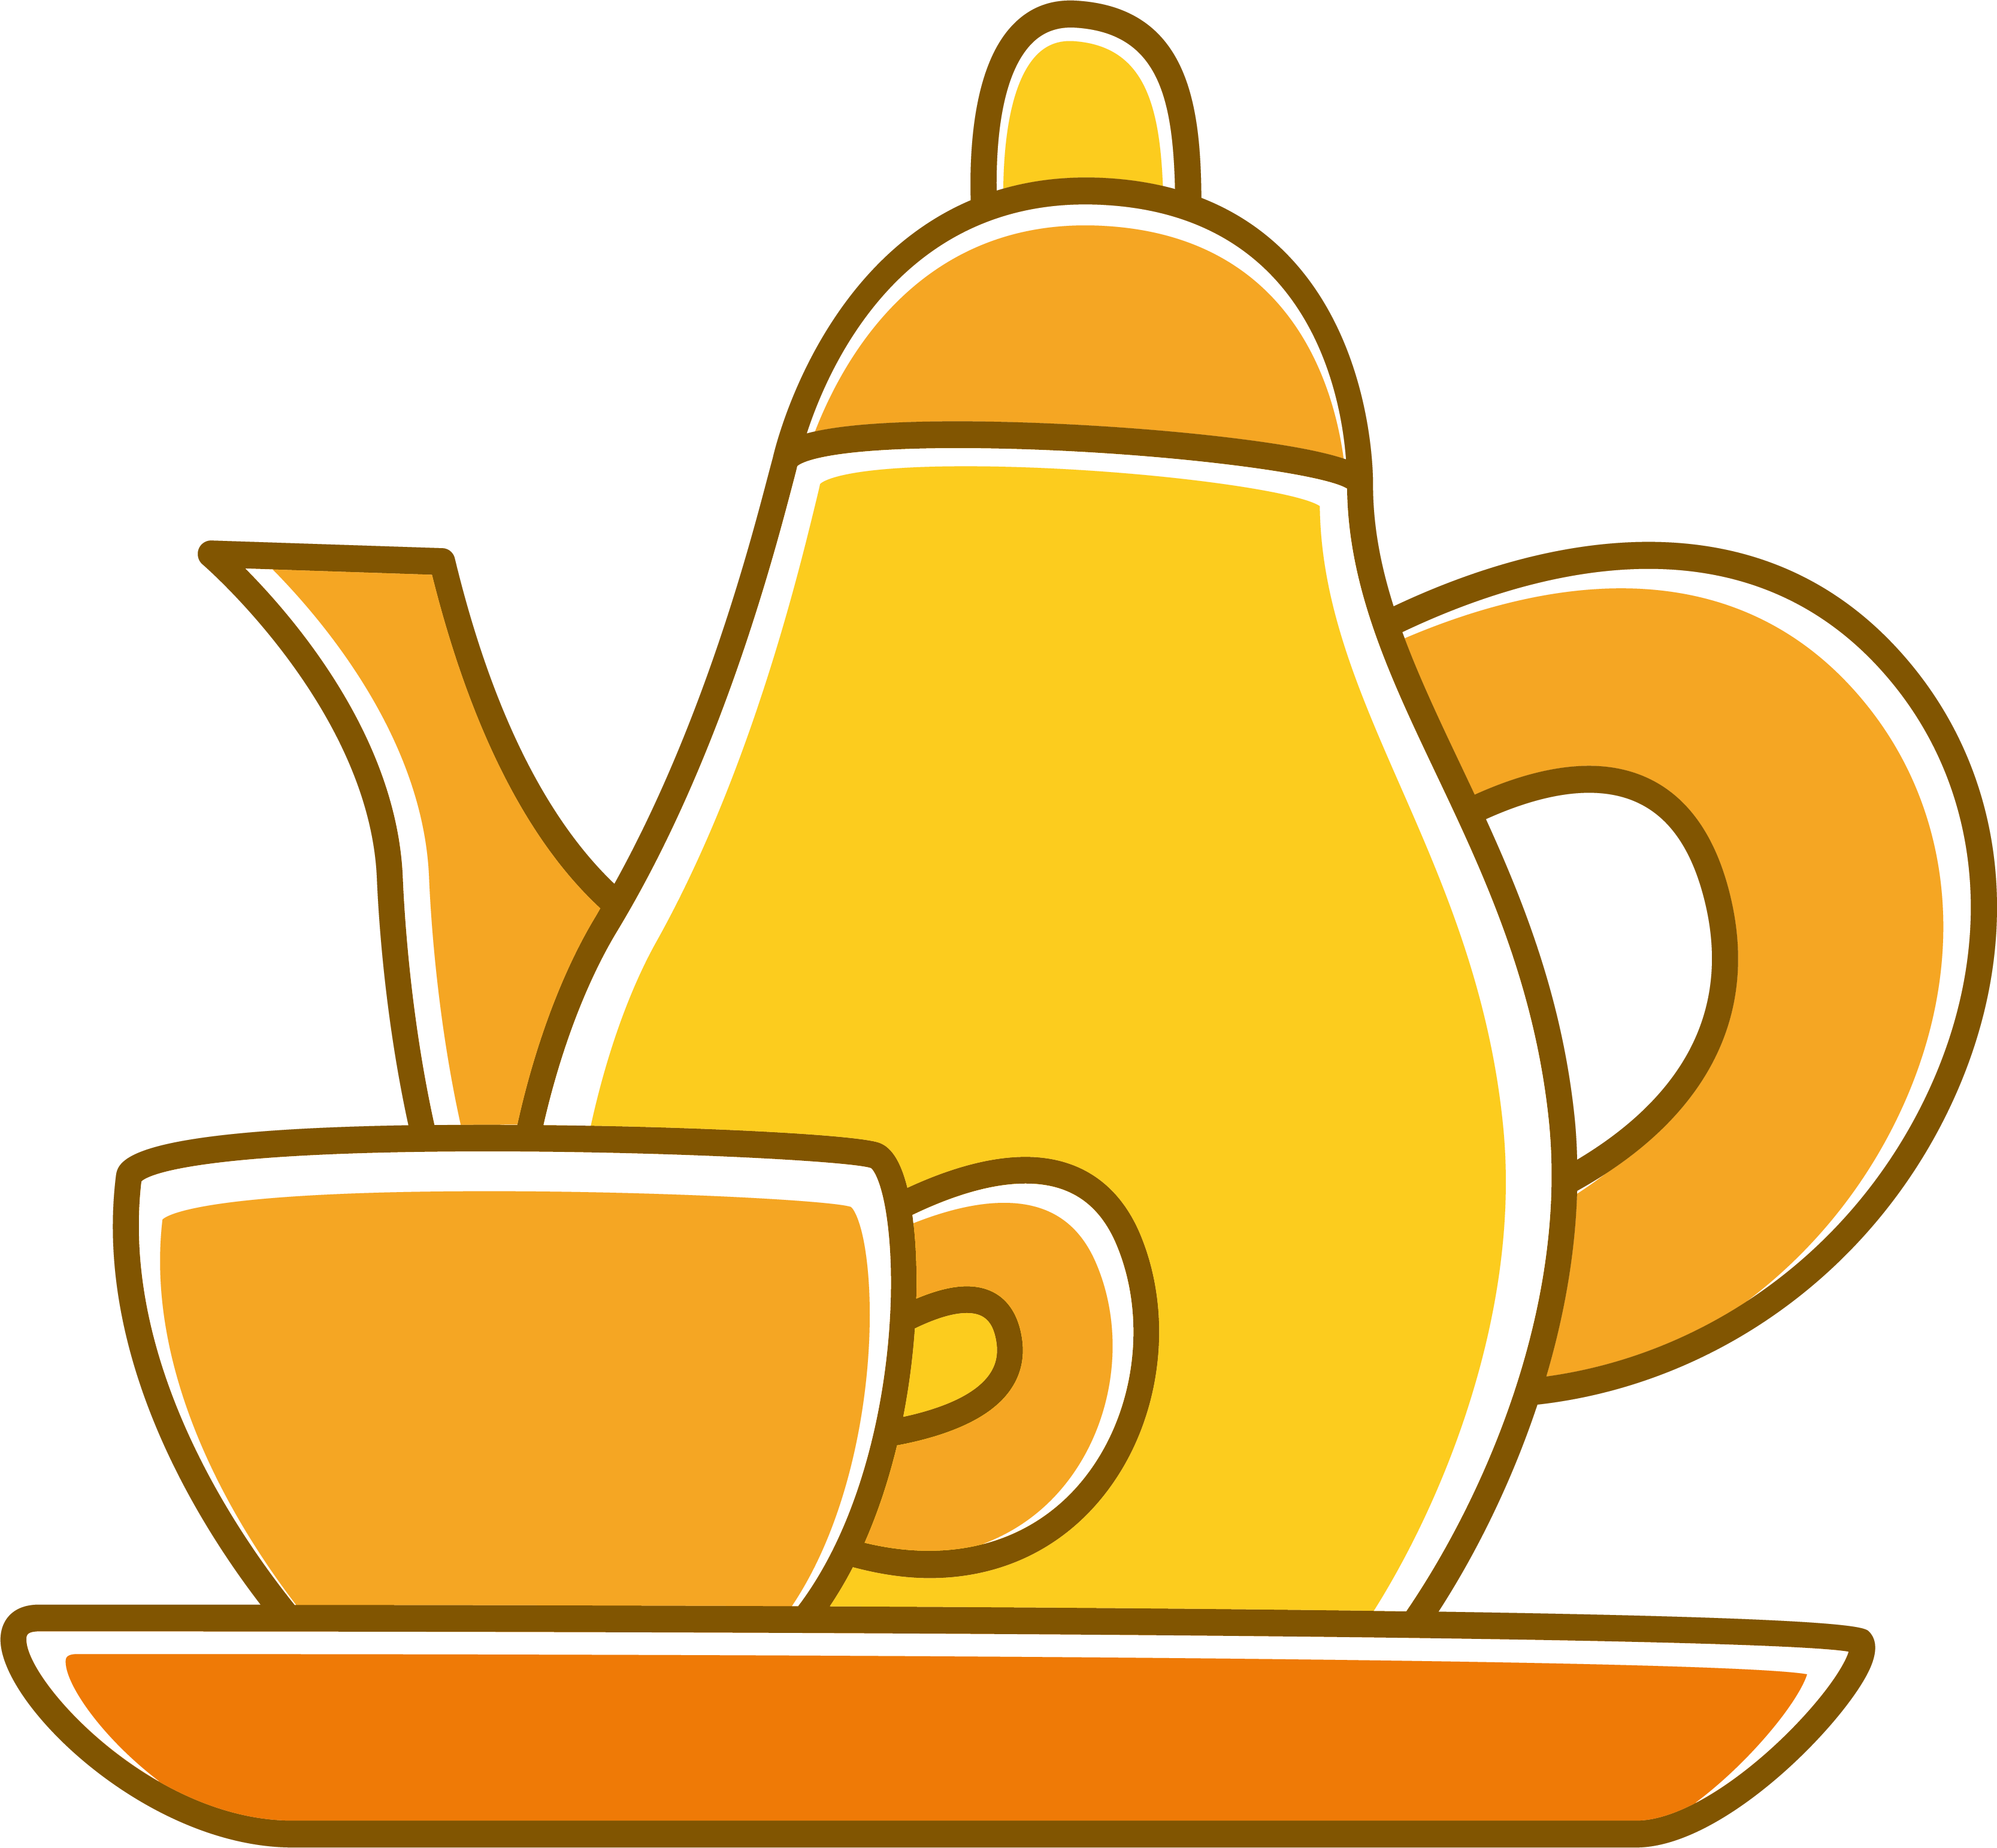 graphic free stock To go coffee cup clipart. Teaware clip art yellow